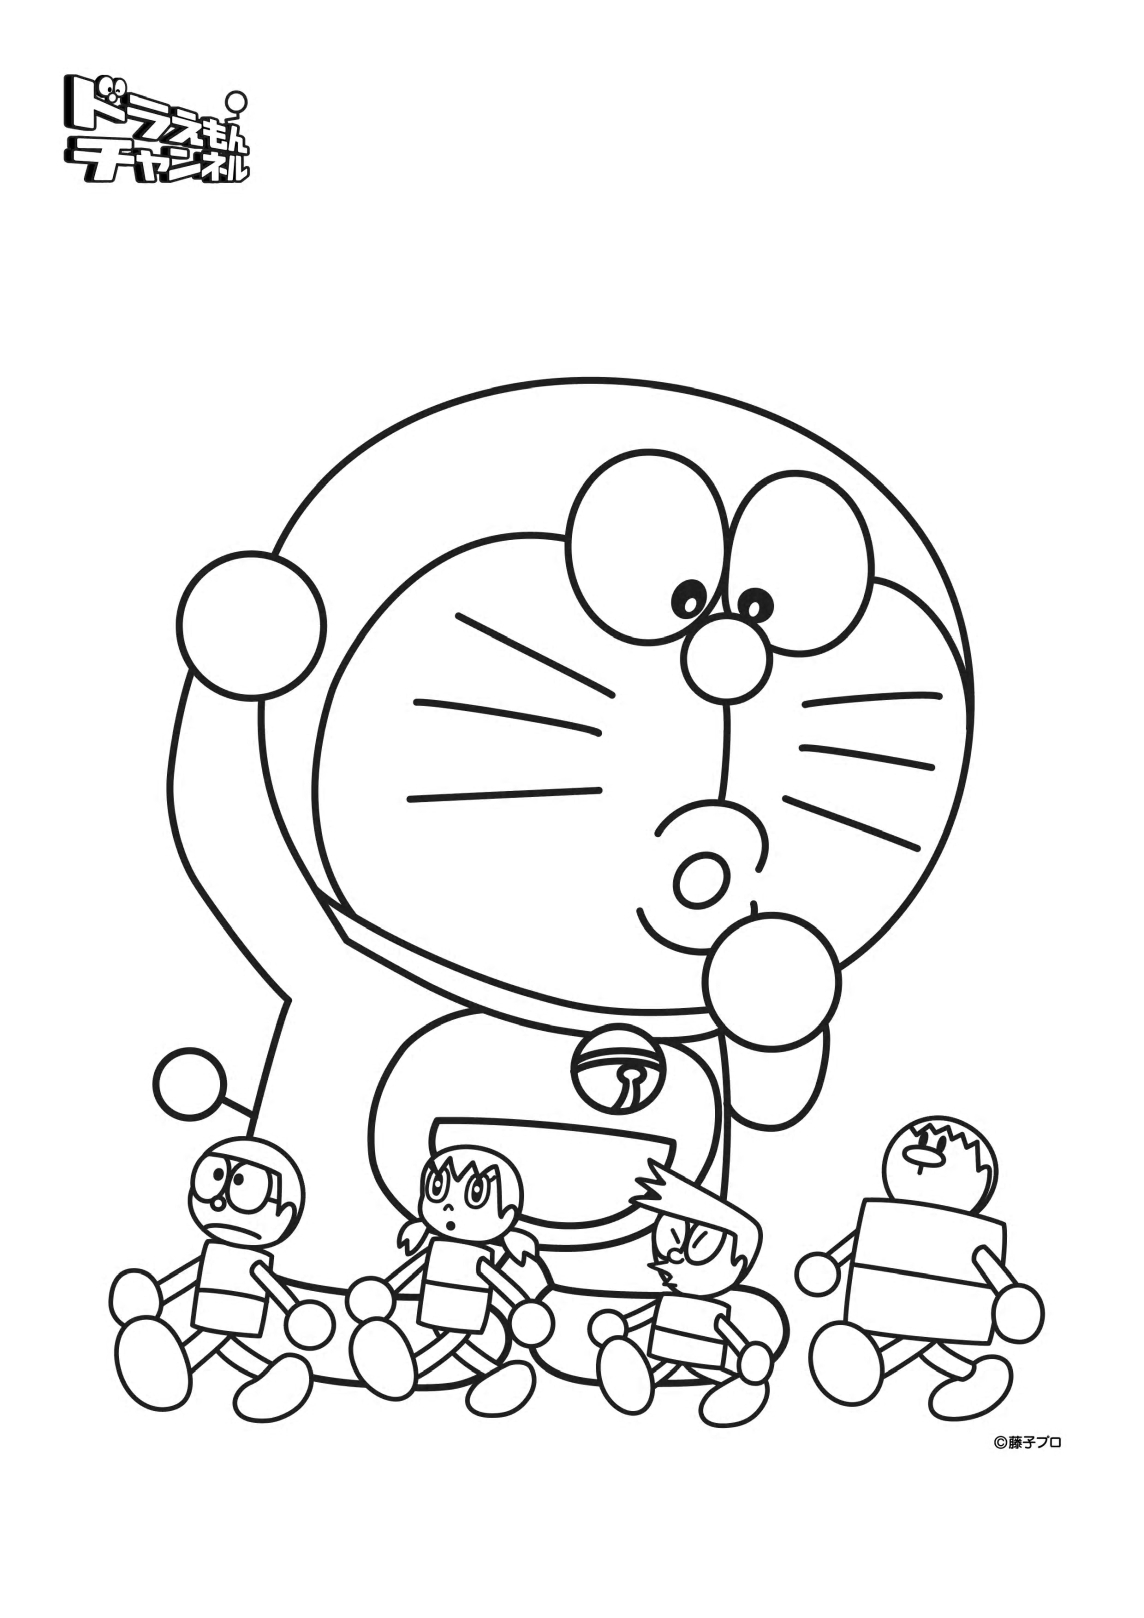 Laura Numeroff Coloring Pages Coloring Pages Numeroff Coloring Pages